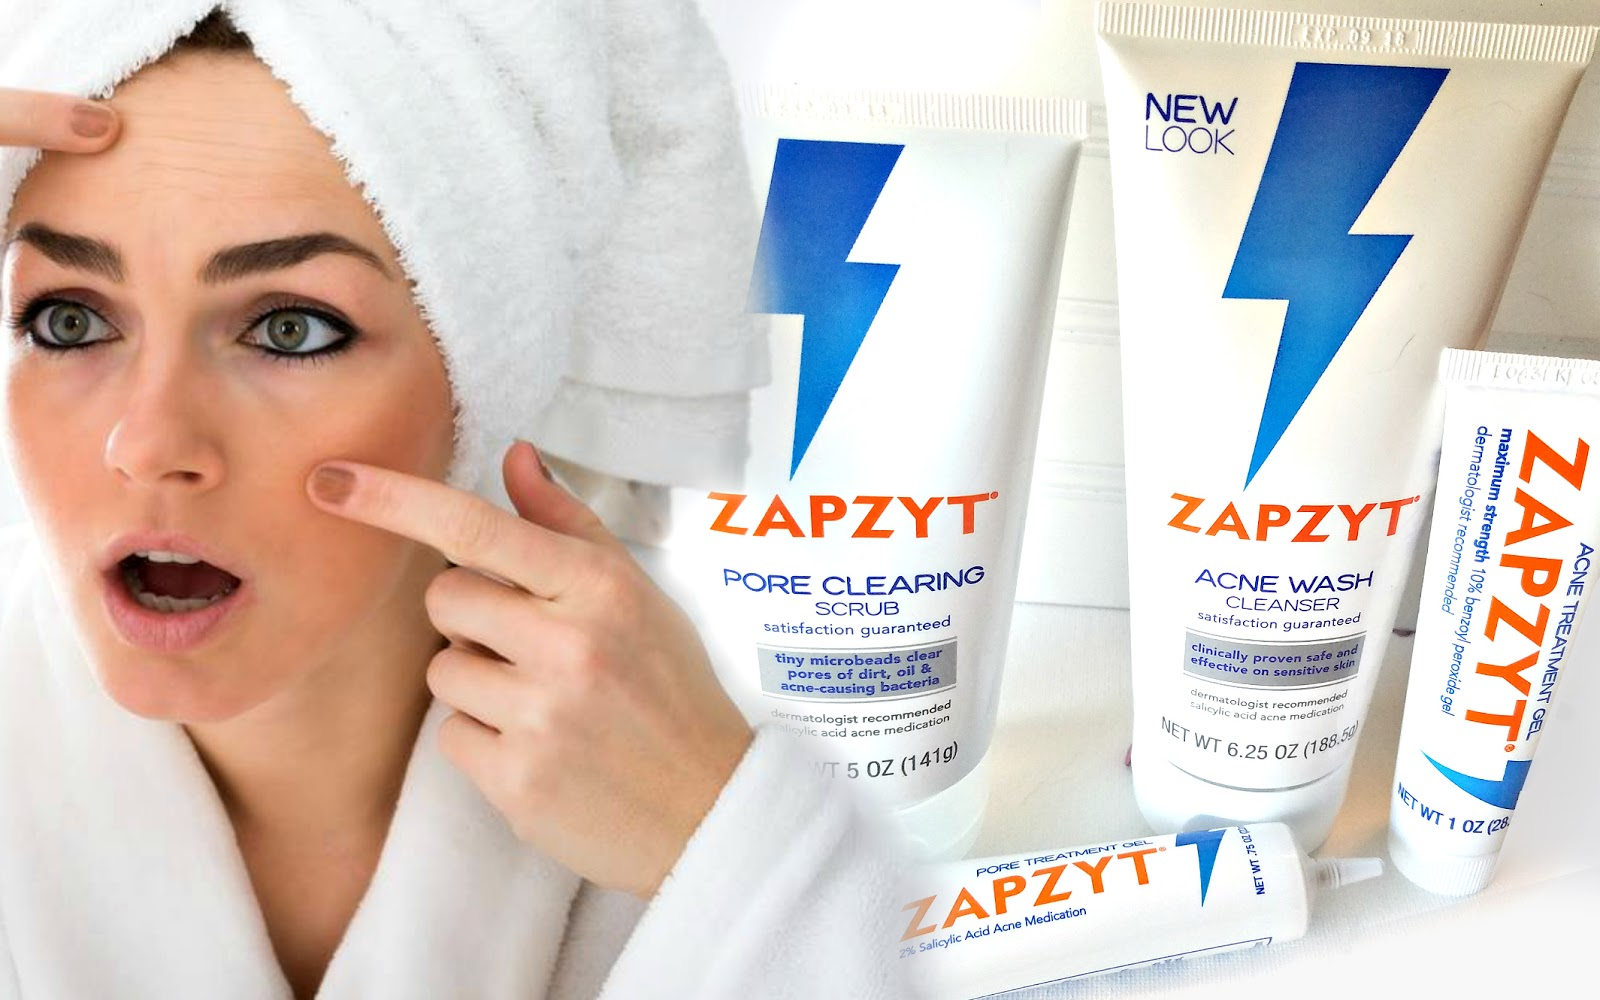 Top Tips To Banishing Adult Acne With ZAPZYT By Barbie's Beauty Bits and PRIMP